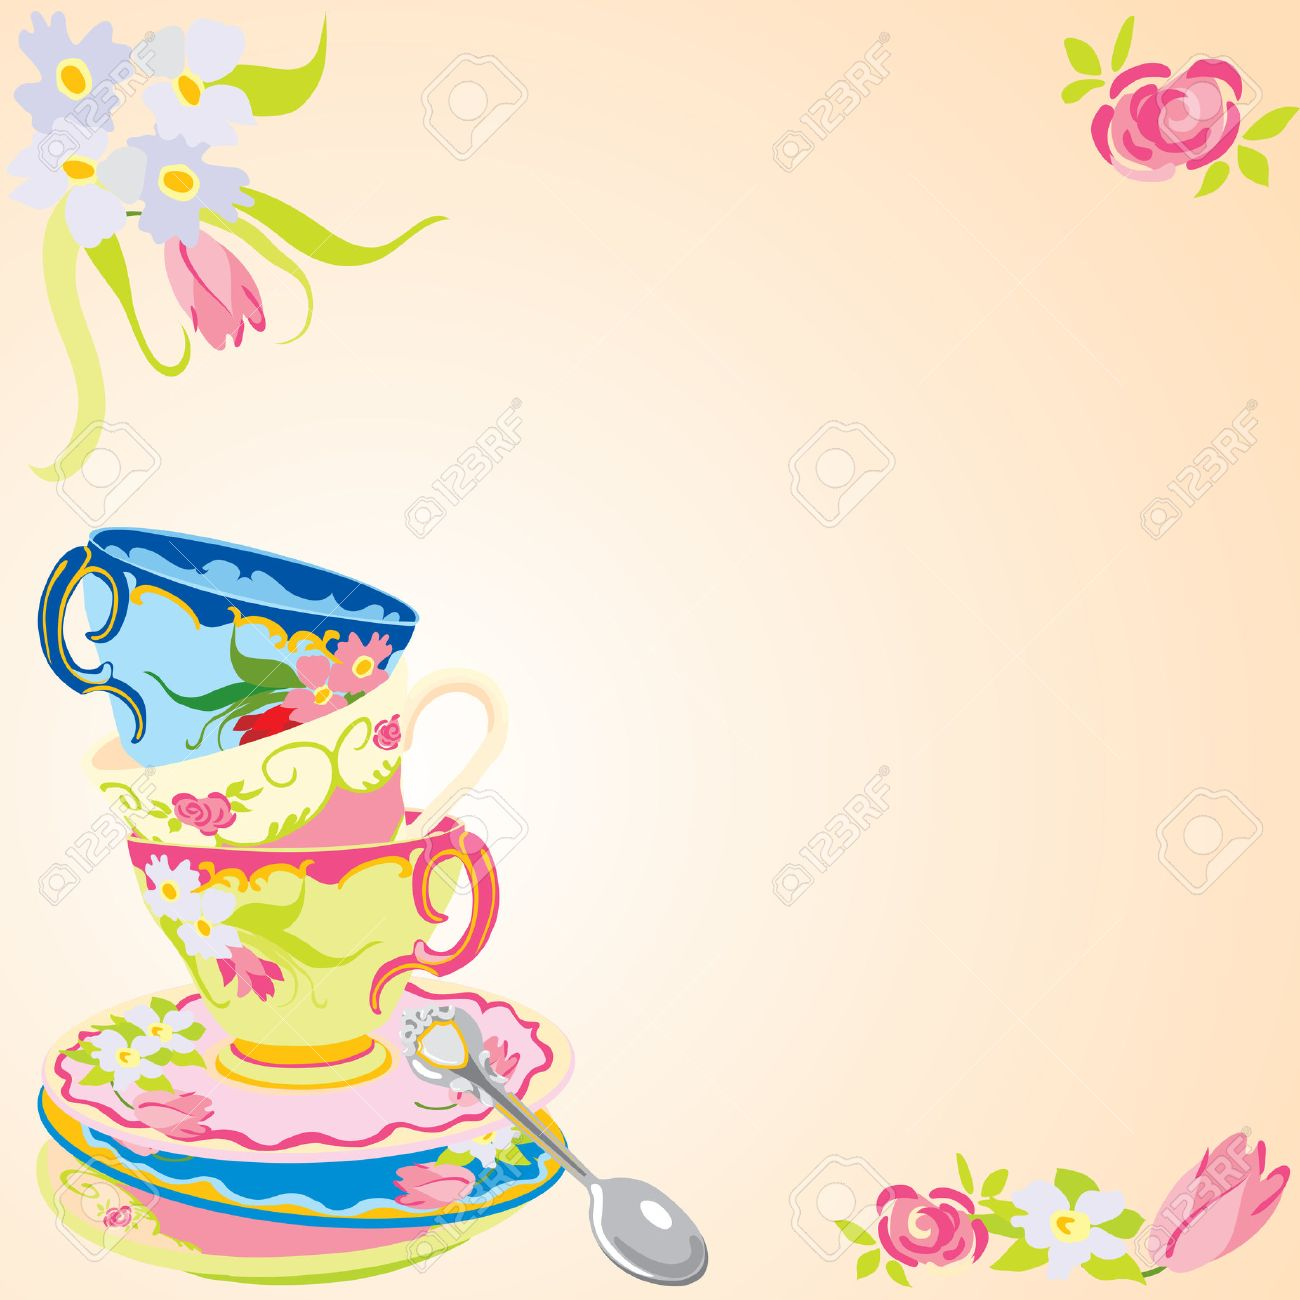 Tea Party Invitation Royalty Free Cliparts Vectors And – Invitation for Tea Party